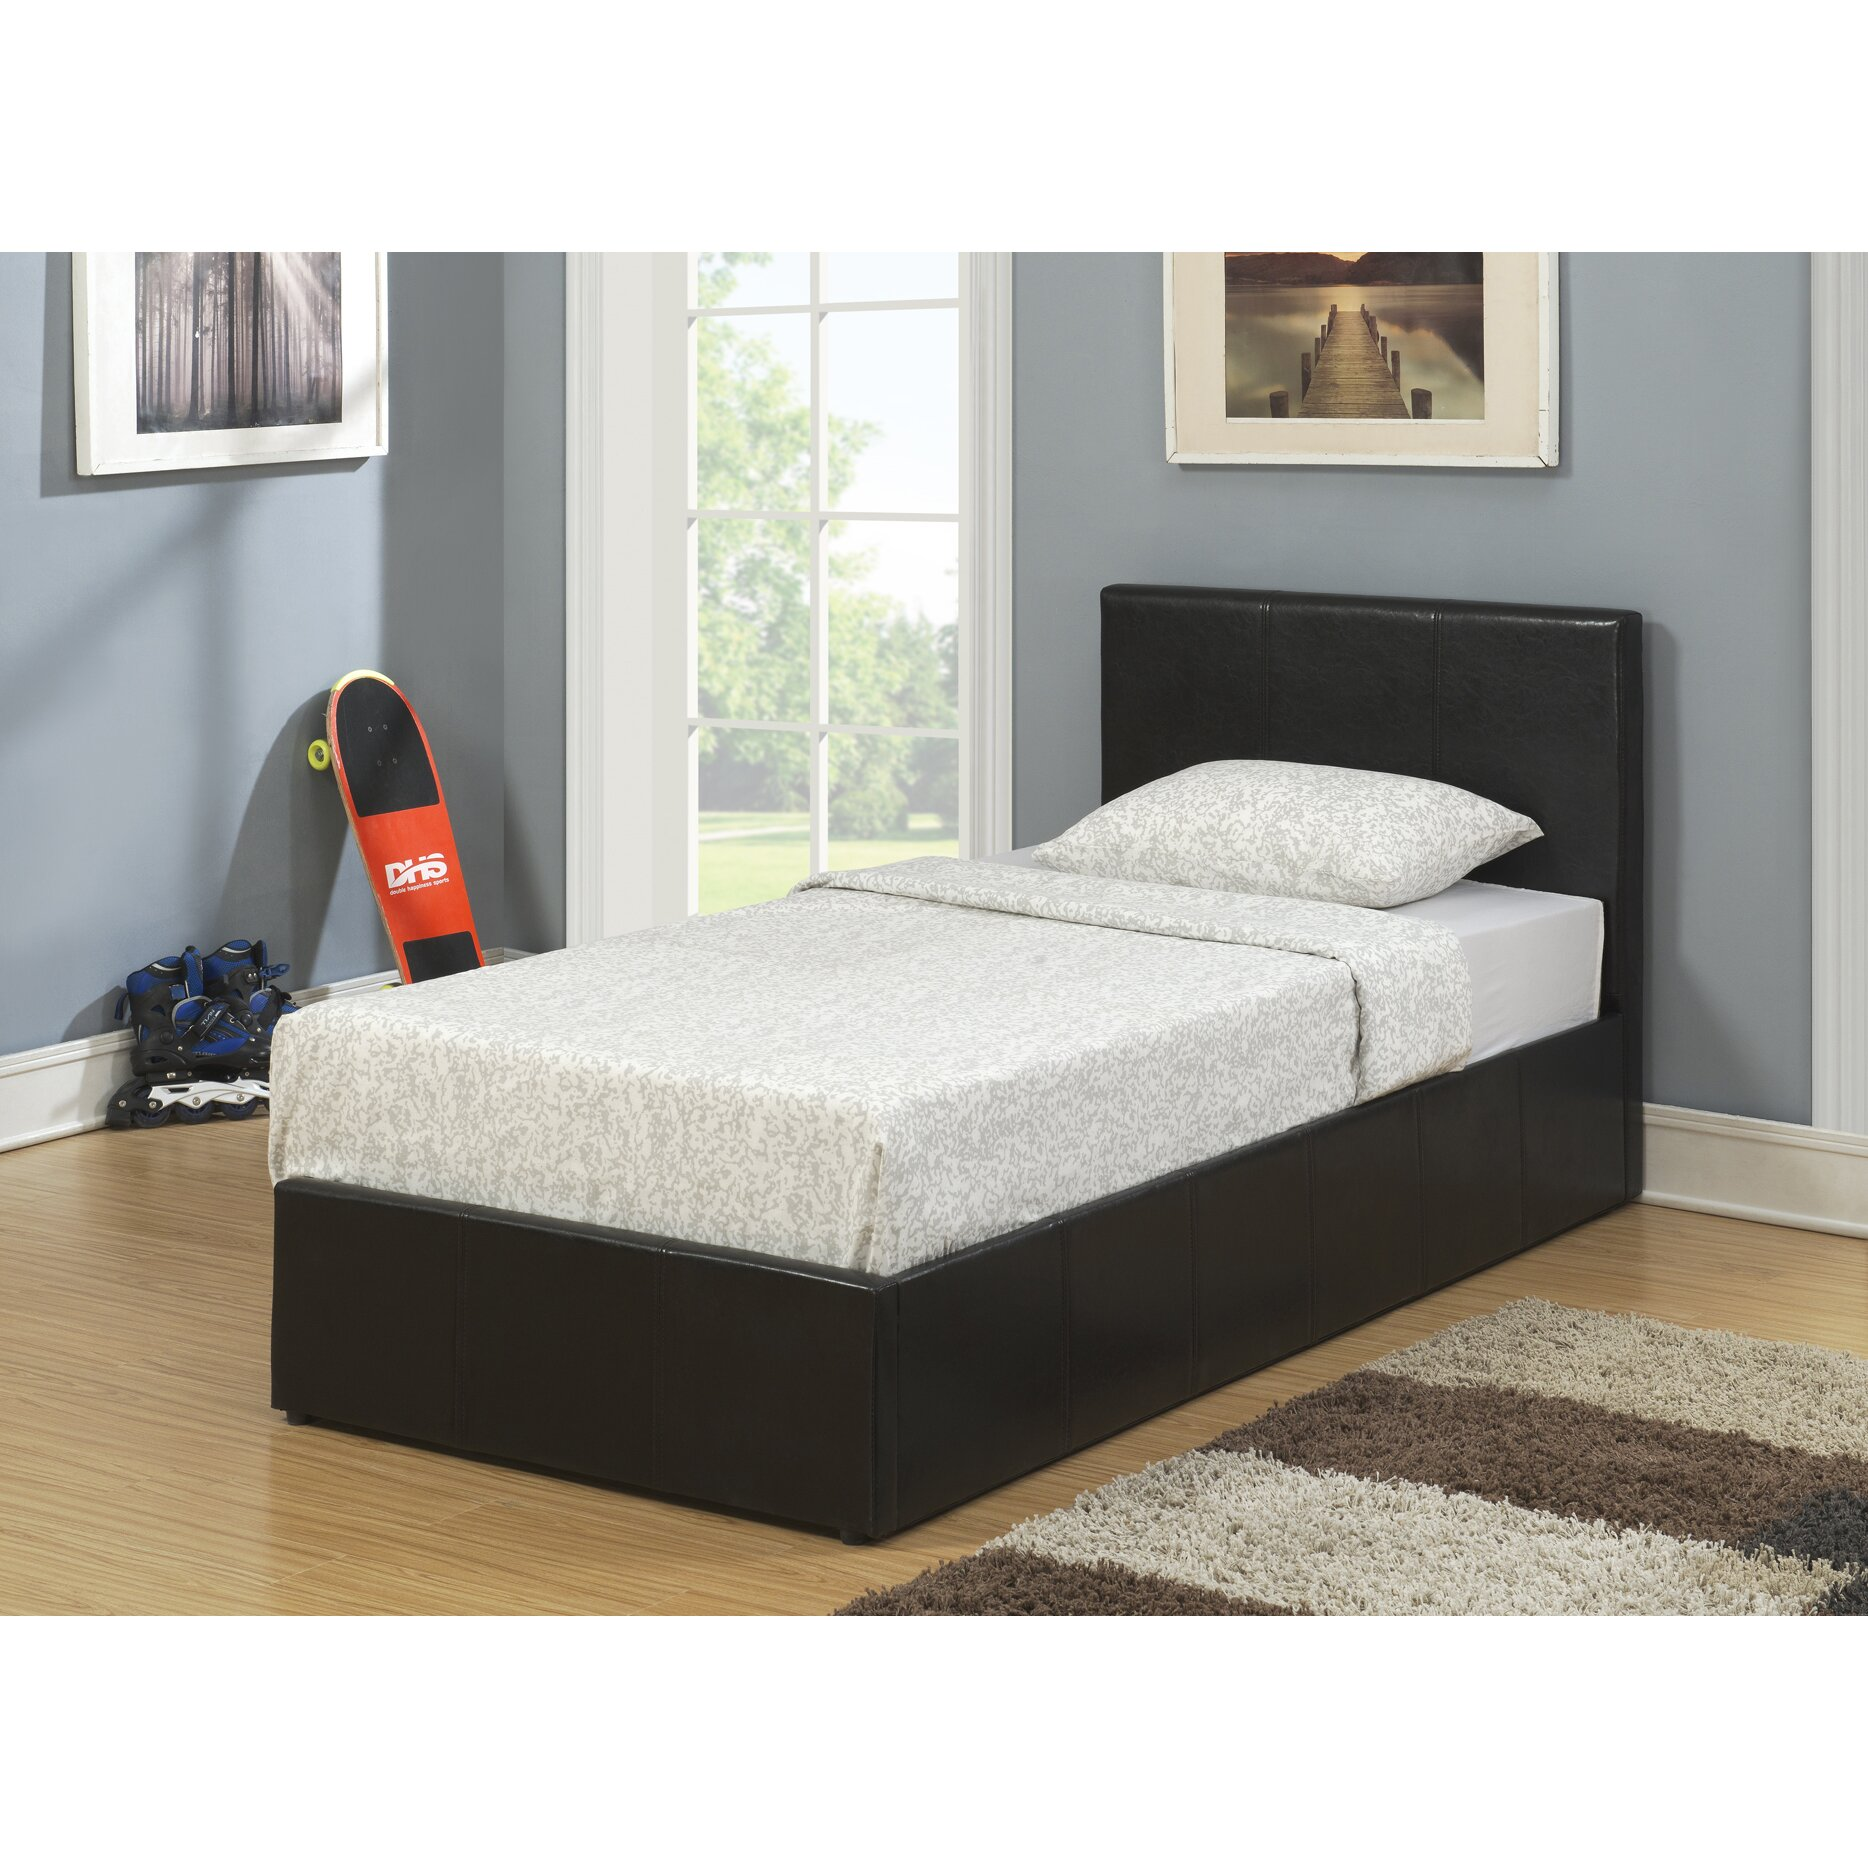 Ottoman For Bedroom Home Haus Essex Upholstered Ottoman Bed Reviews Wayfaircouk